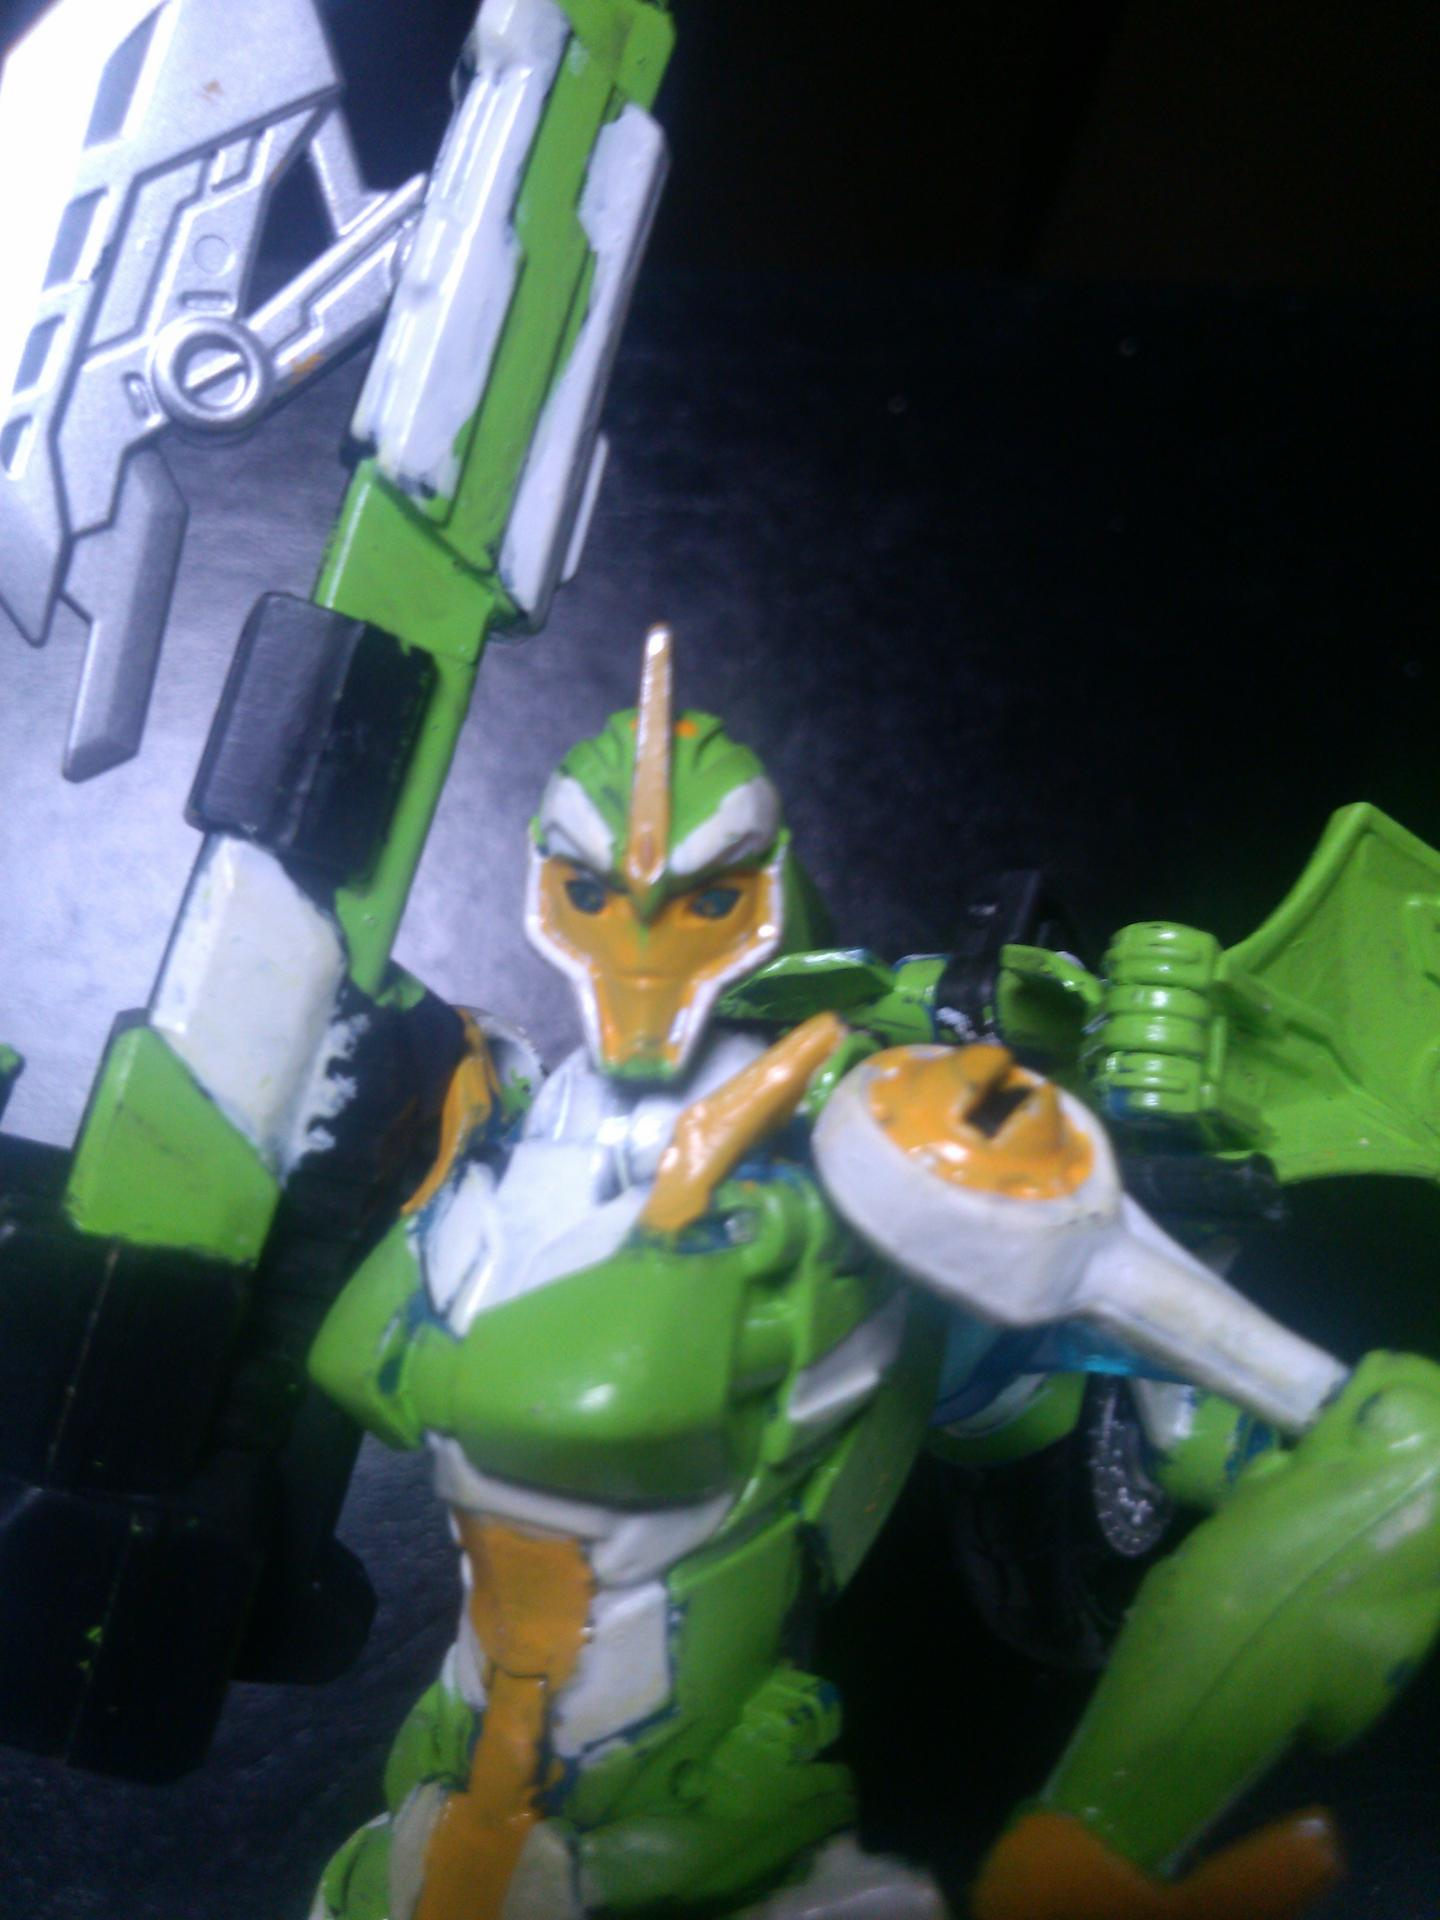 G1 Greenlight!-greenlight-4-.jpg